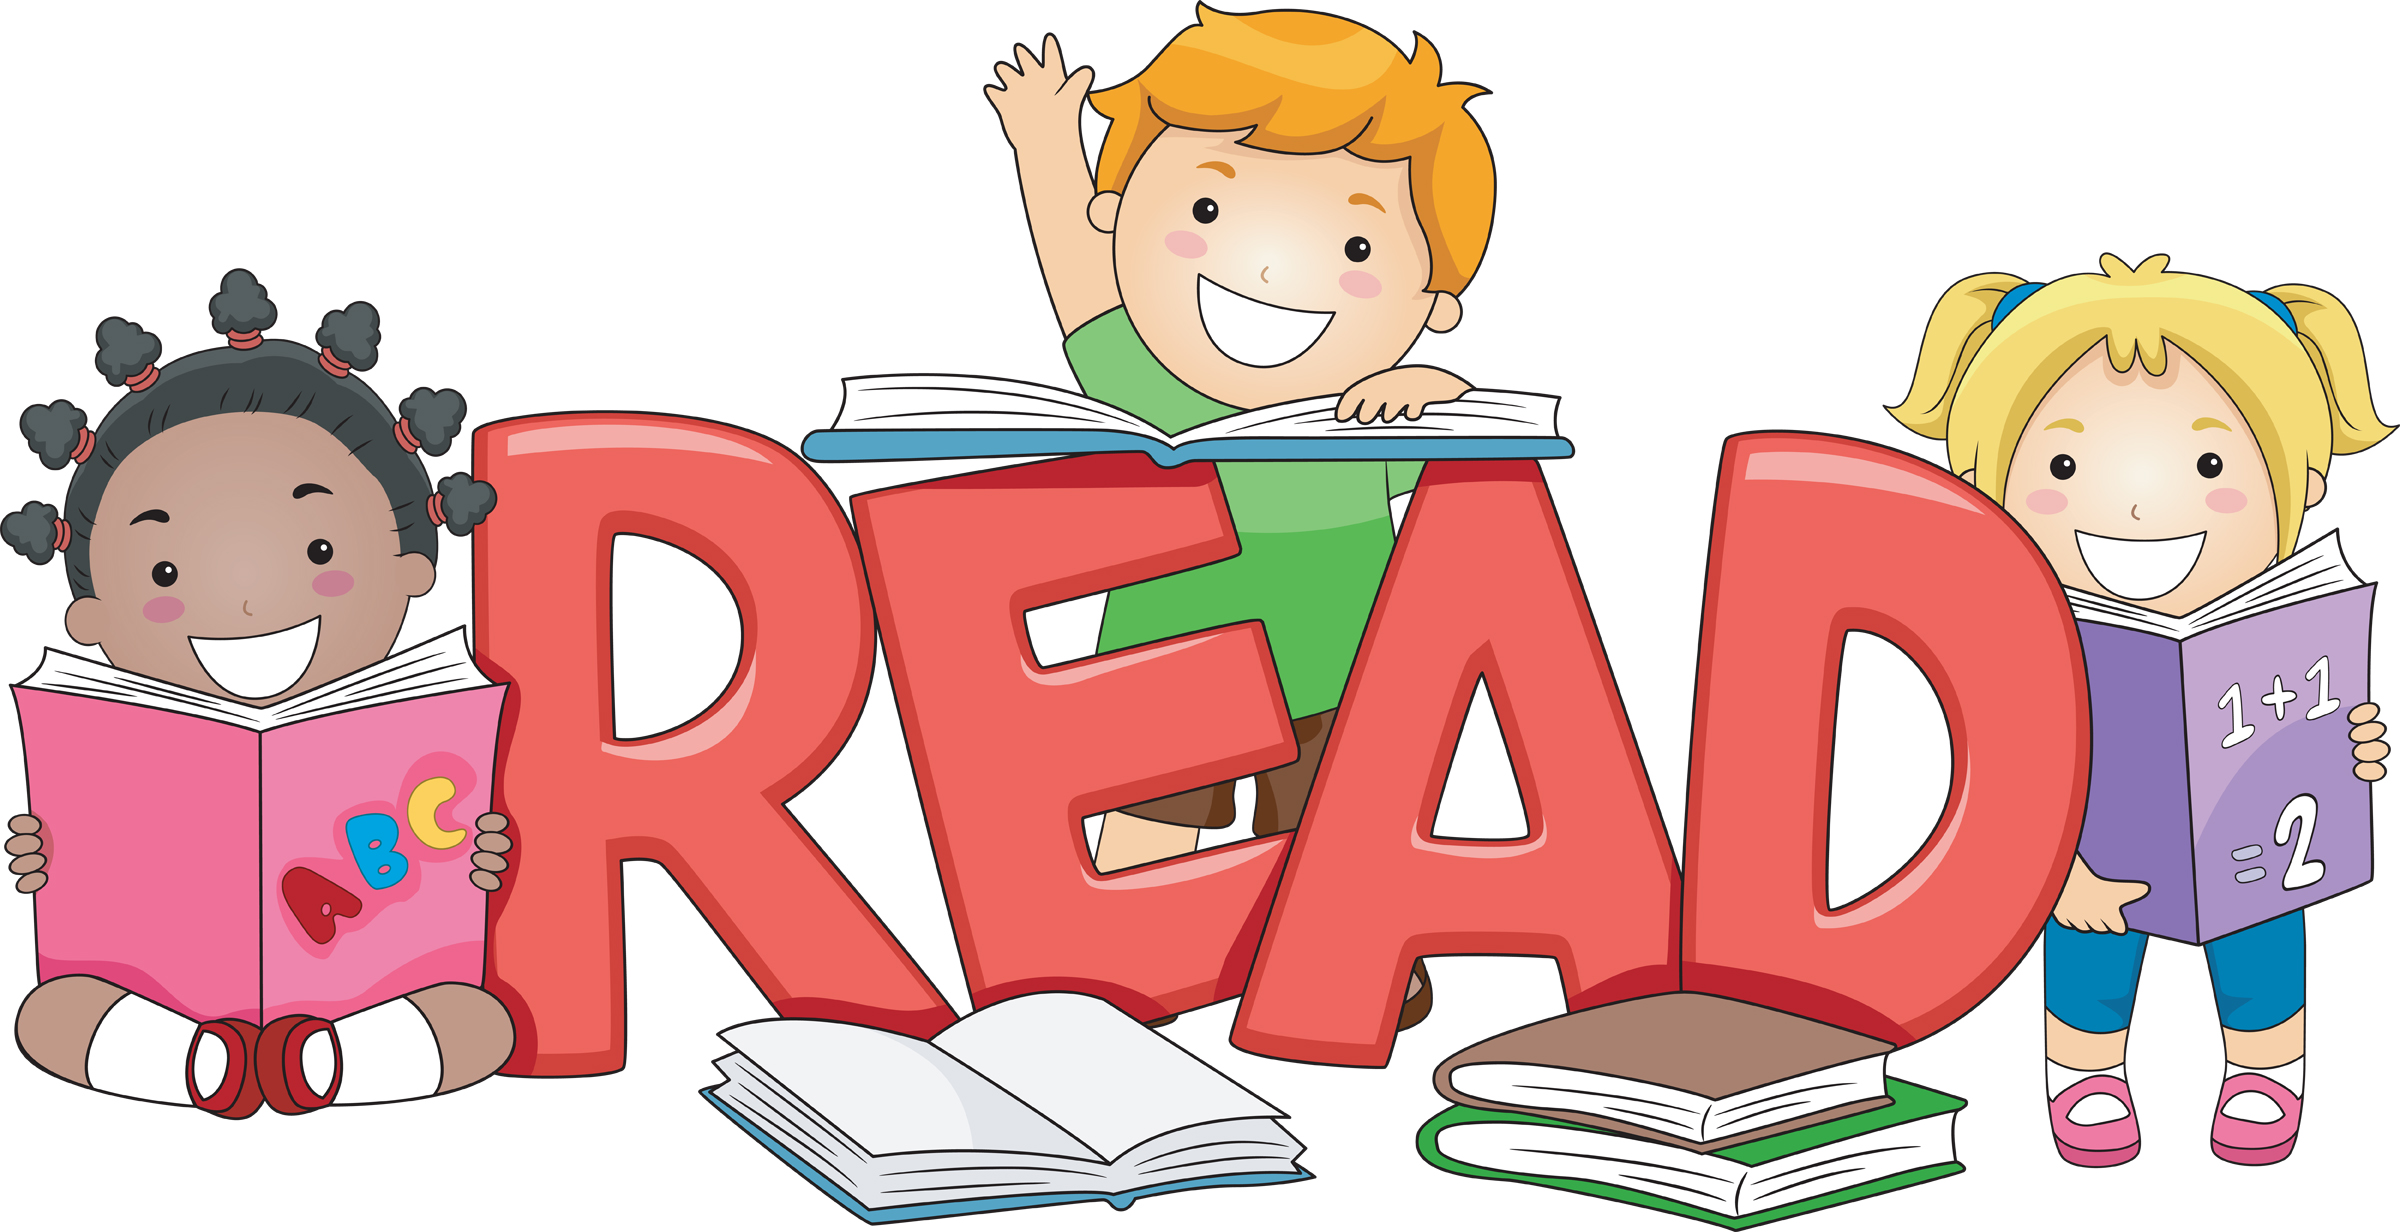 Kid reading reading group clipart 2